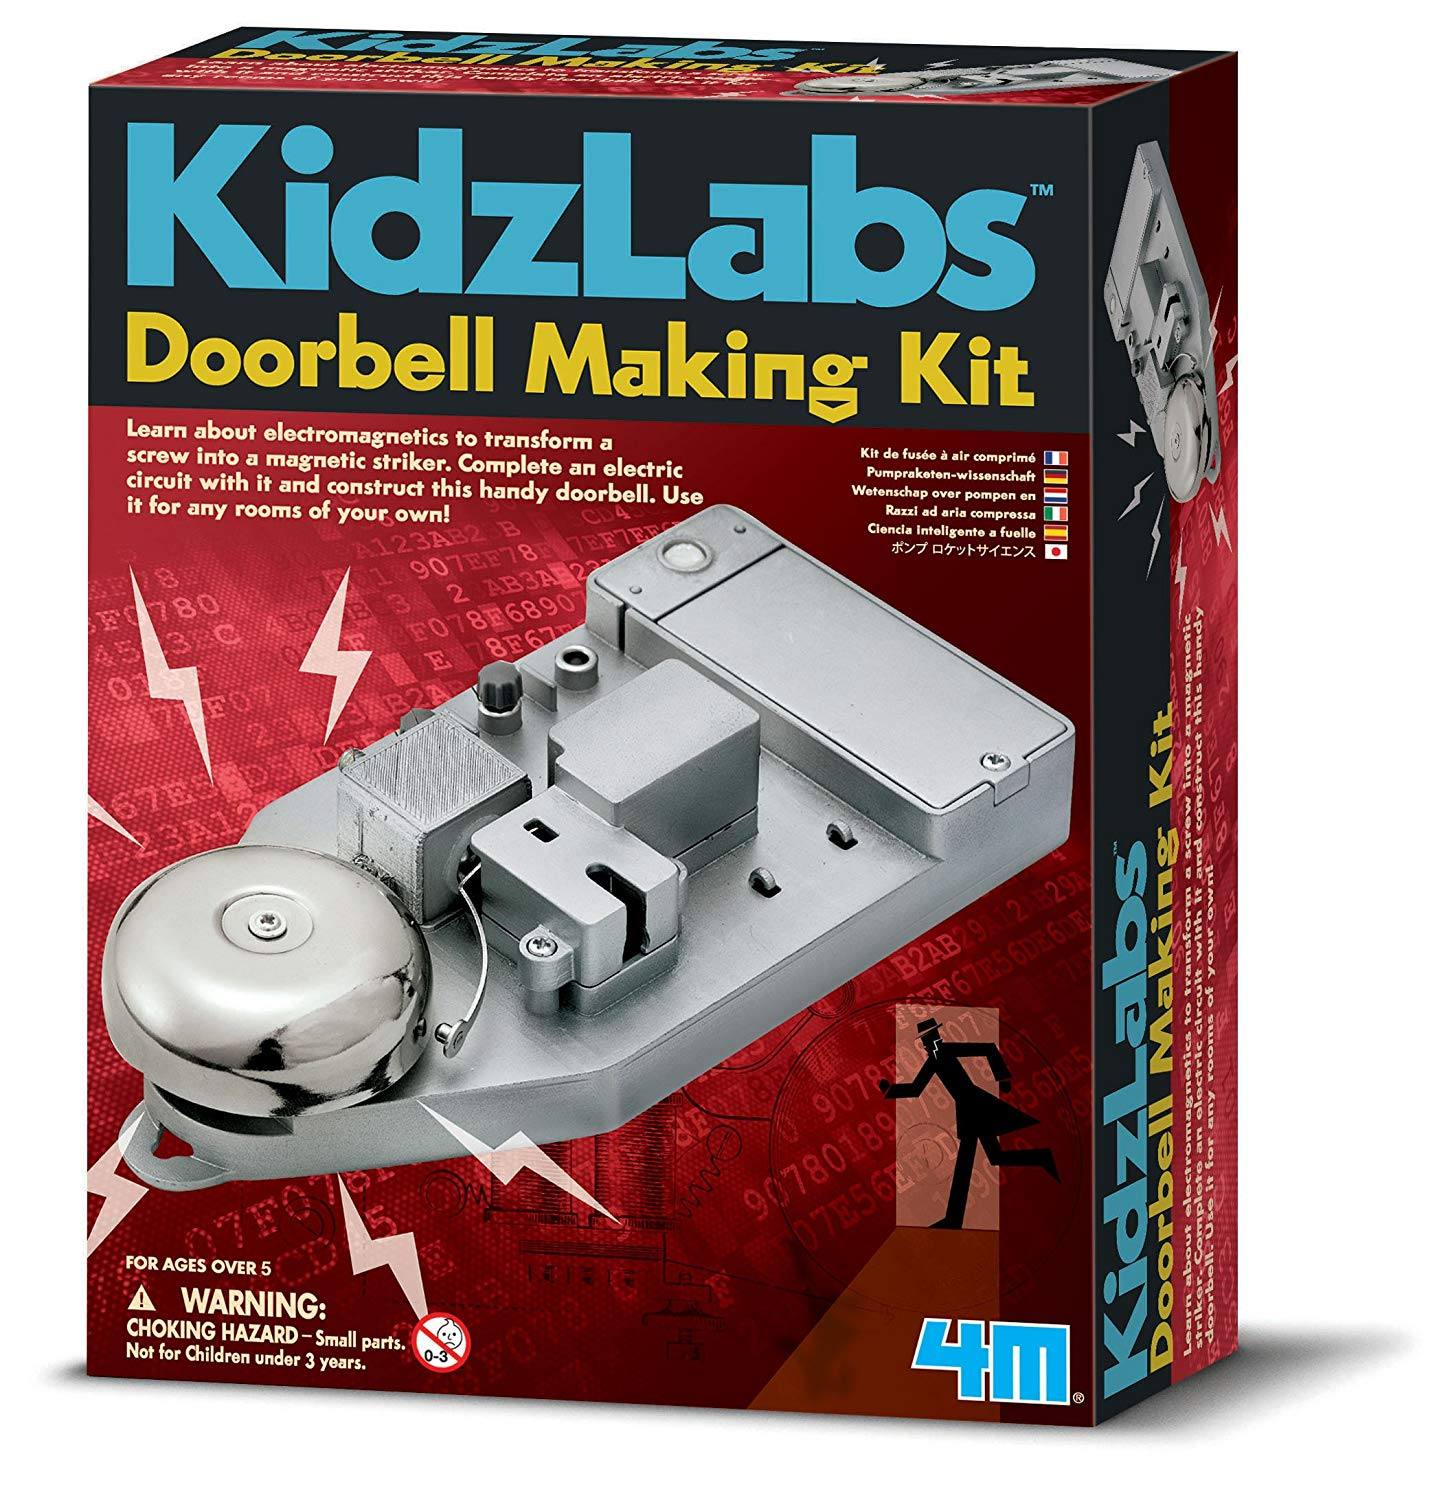 4M Kidz Labs Doorbell Making Kit